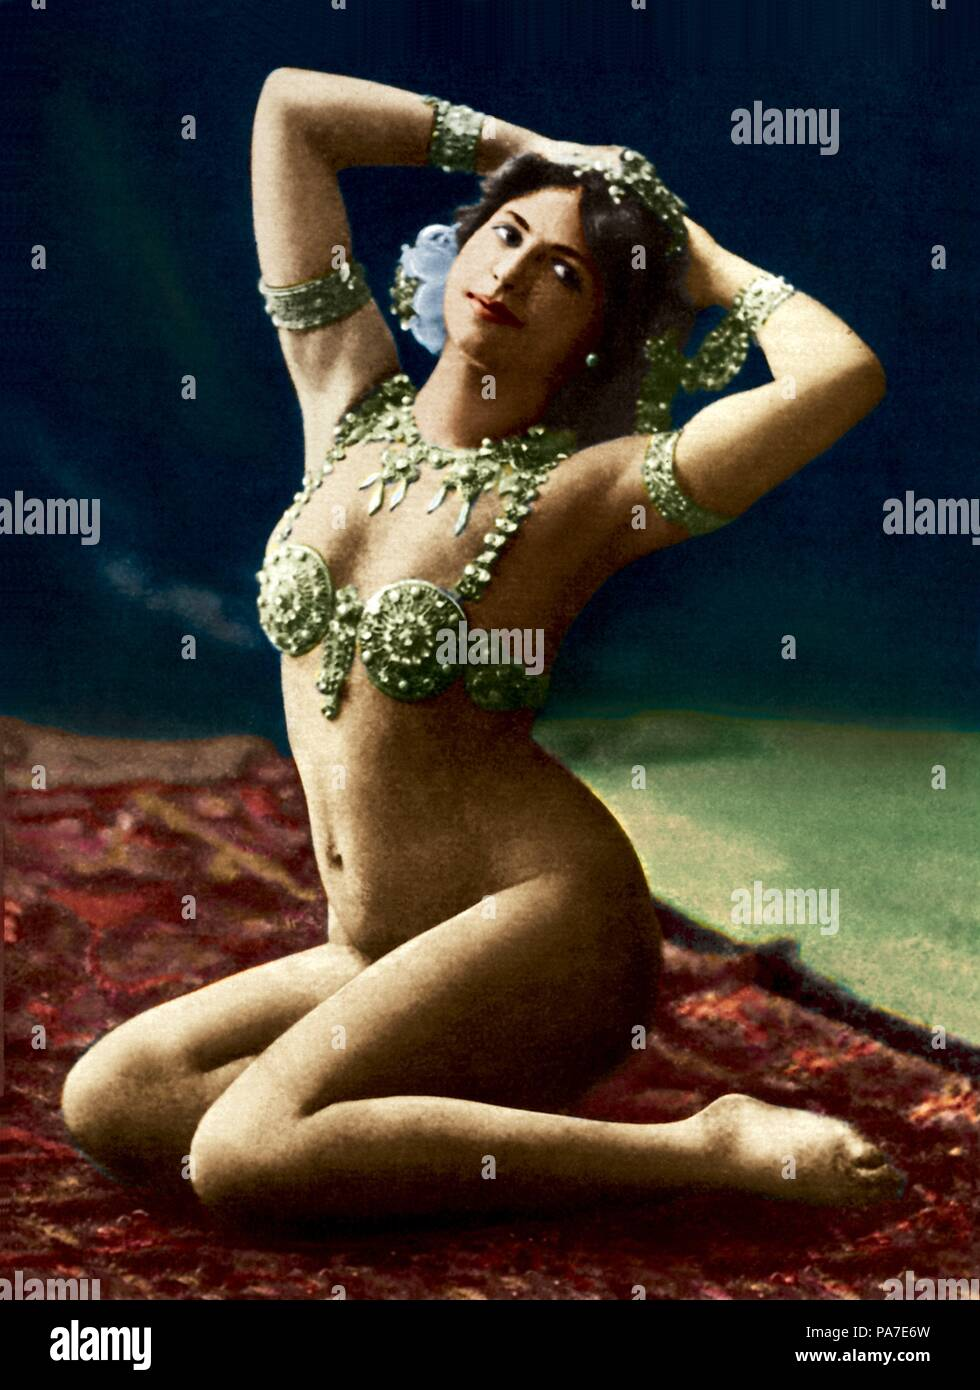 Mata Hari in La Scala. Museum: Fries Museum, Leeuwarden. - Stock Image